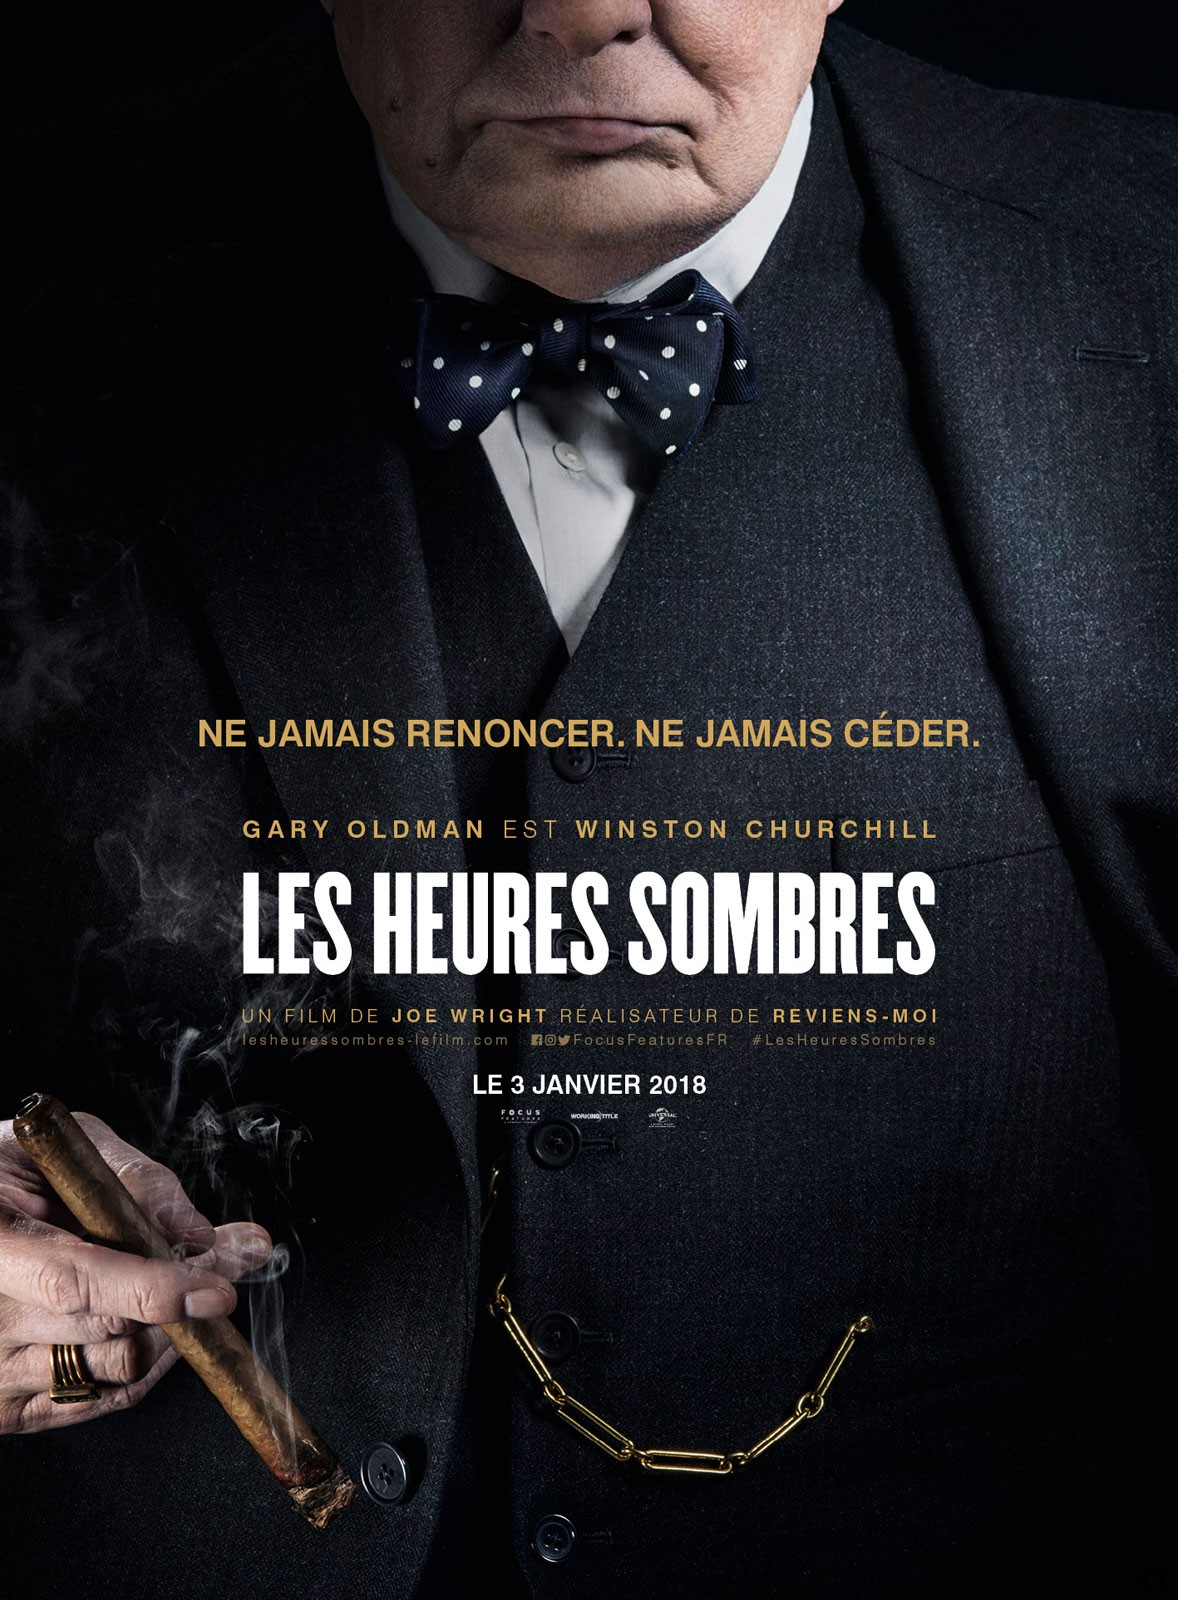 Les heures sombres FRENCH WEBRIP 1080p 2018